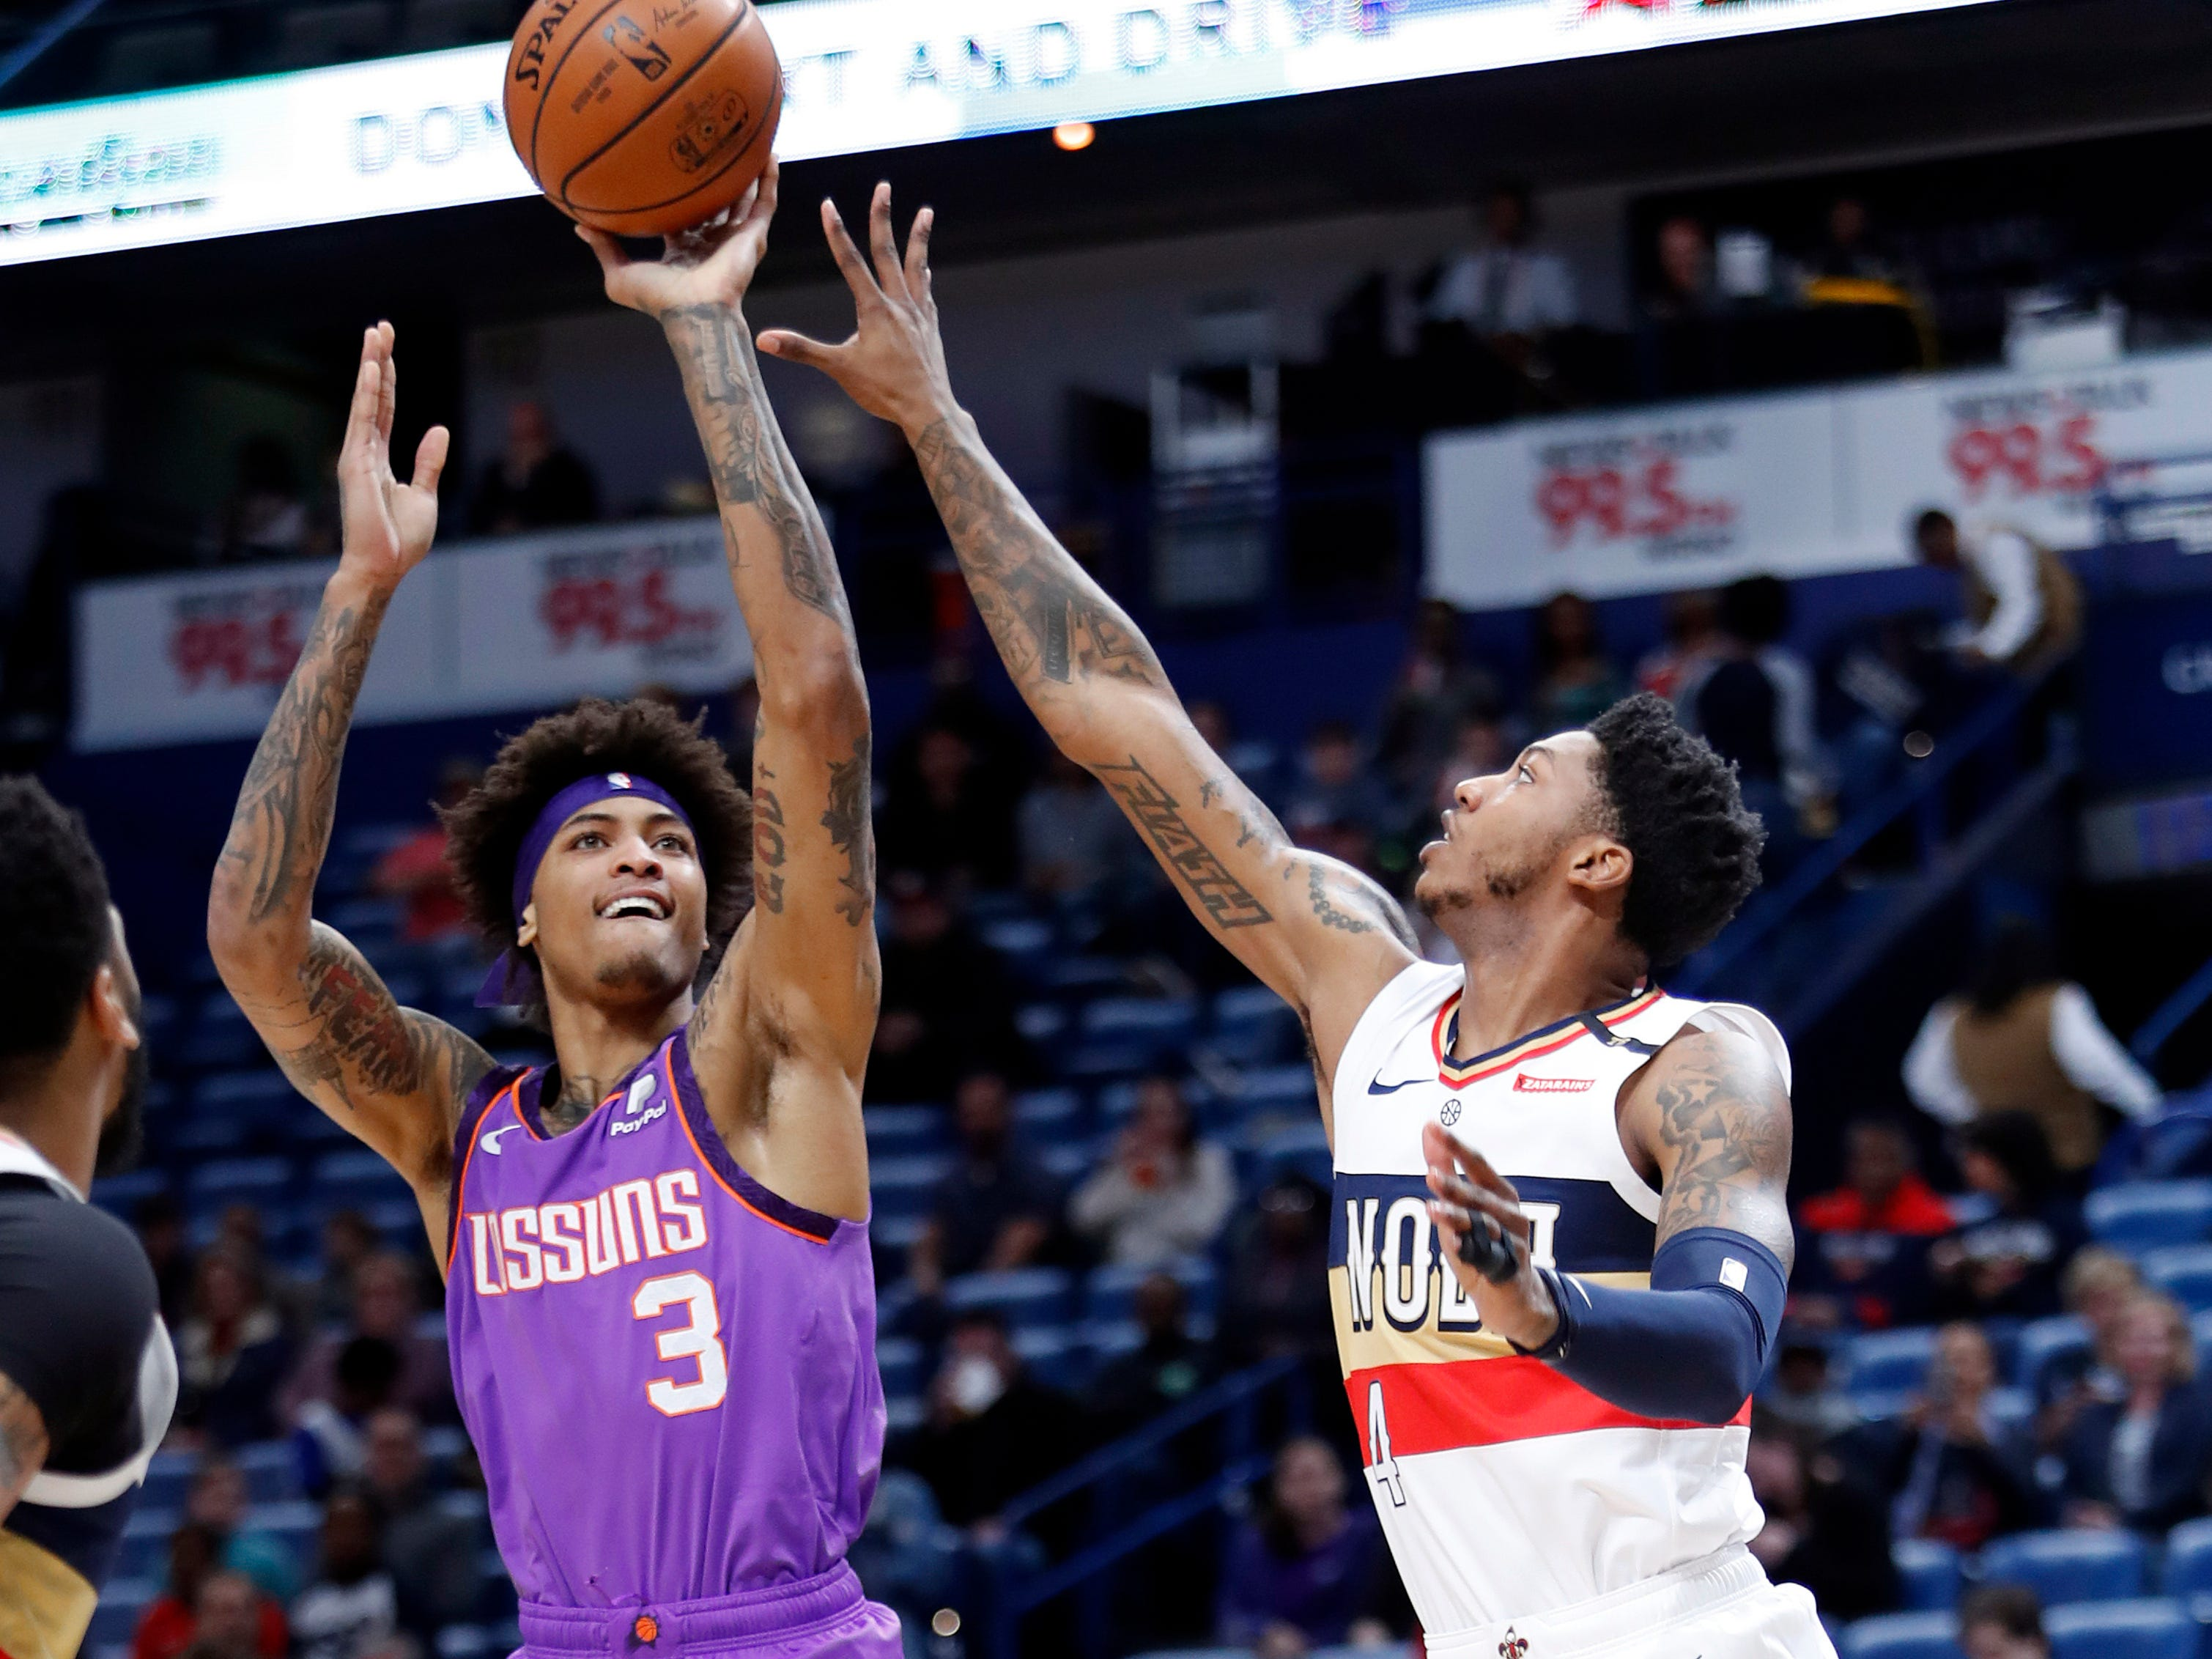 Phoenix Suns forward Kelly Oubre Jr. (3) shoots over New Orleans Pelicans guard Elfrid Payton (4) during the first half of an NBA basketball game in New Orleans, Saturday, March 16, 2019.